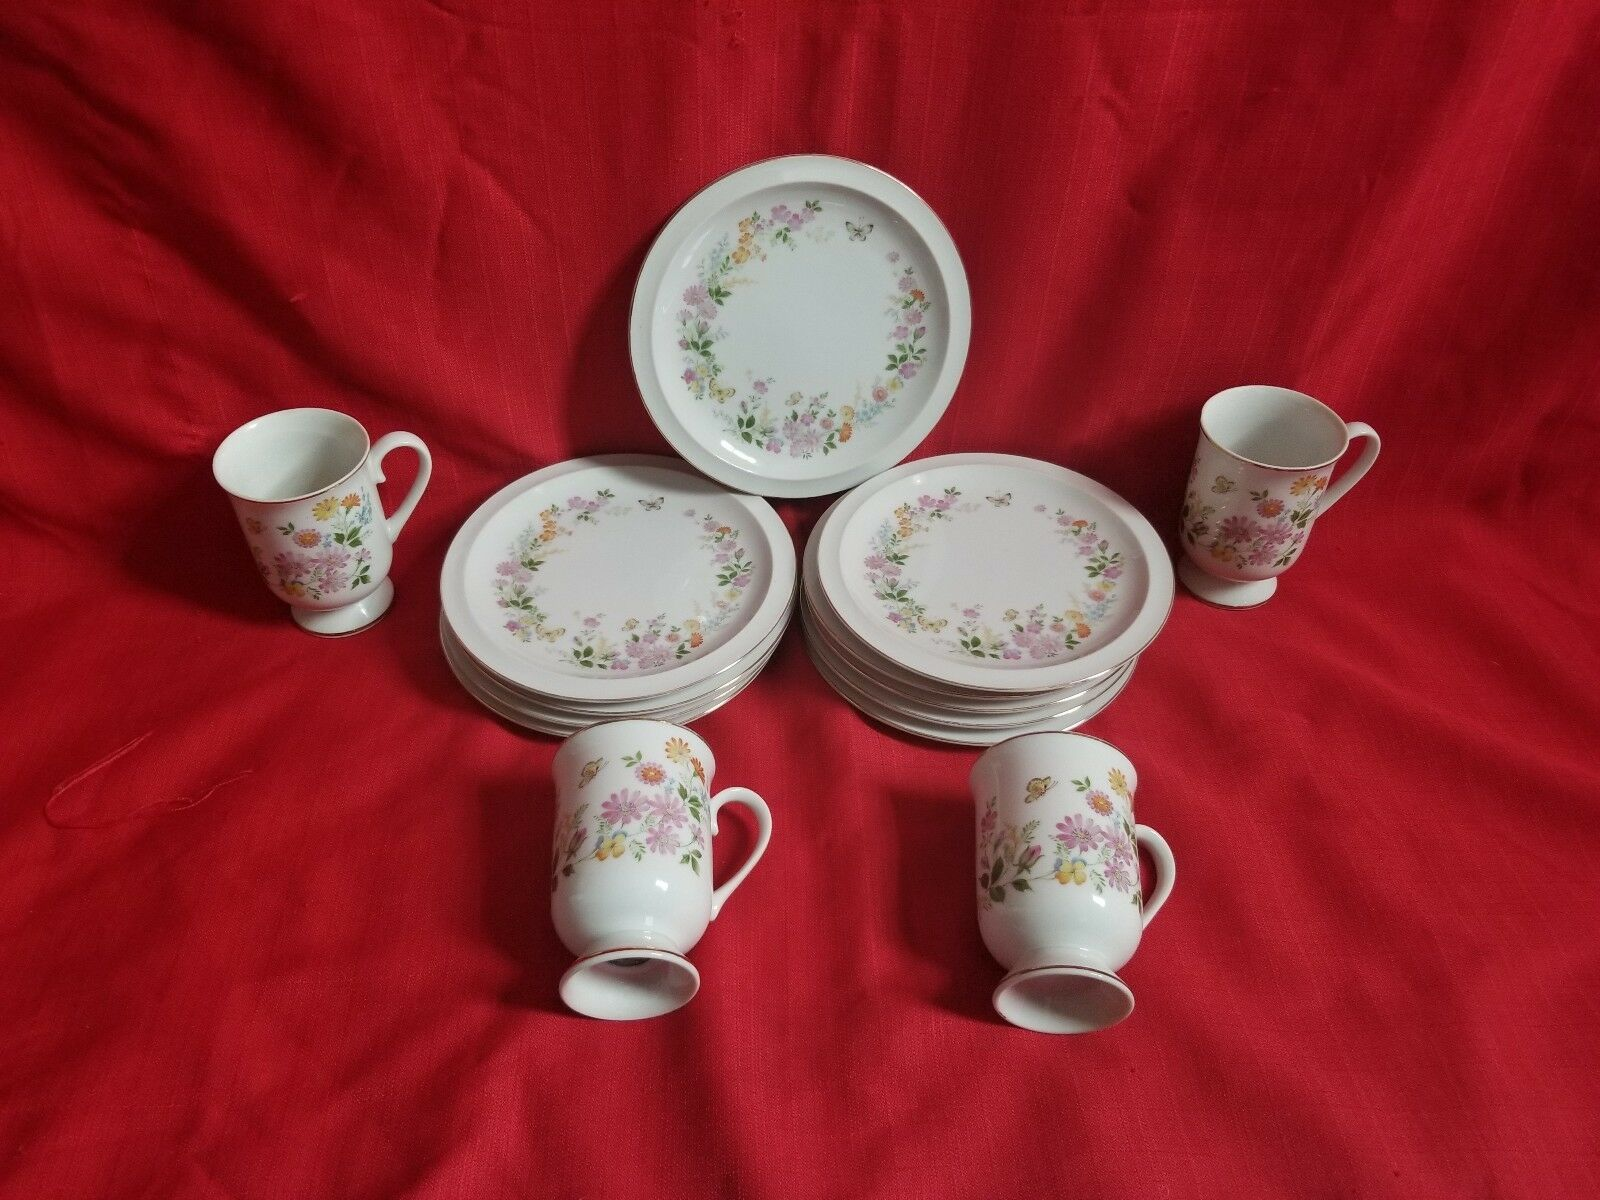 Vintage tea Set Spring Gardenby ROYAL DOMINO butterfly floral Plates +cups14pc - $32.67